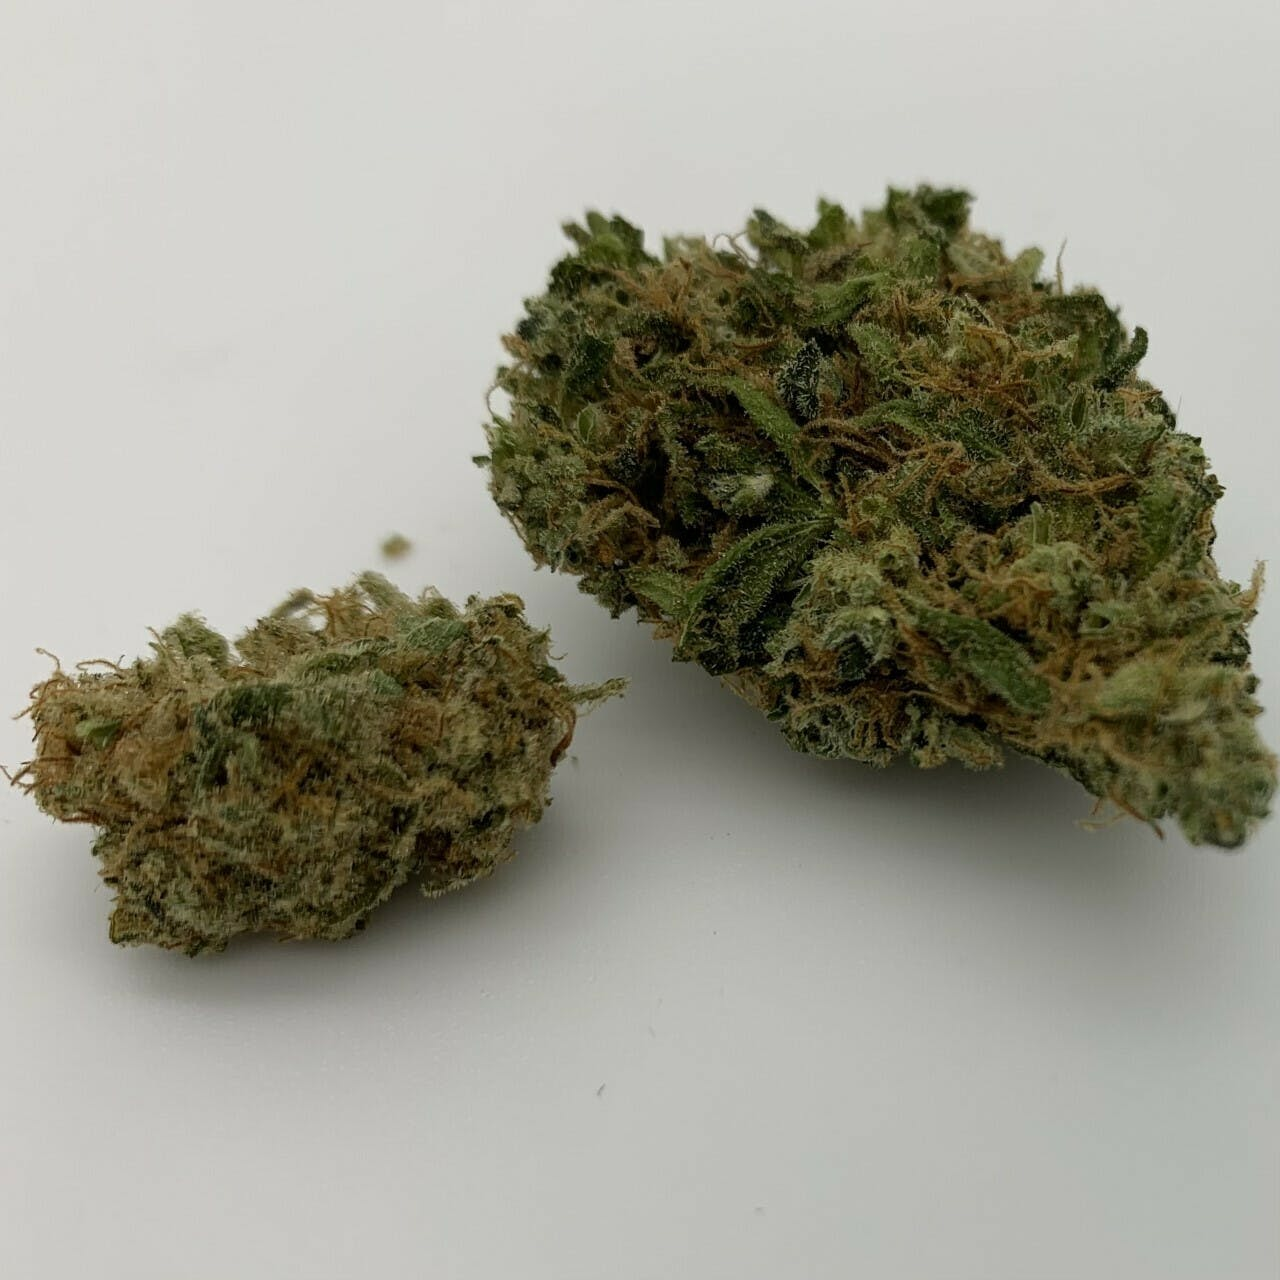 Dutch Treat 1:1 - $20 Eighth OTD